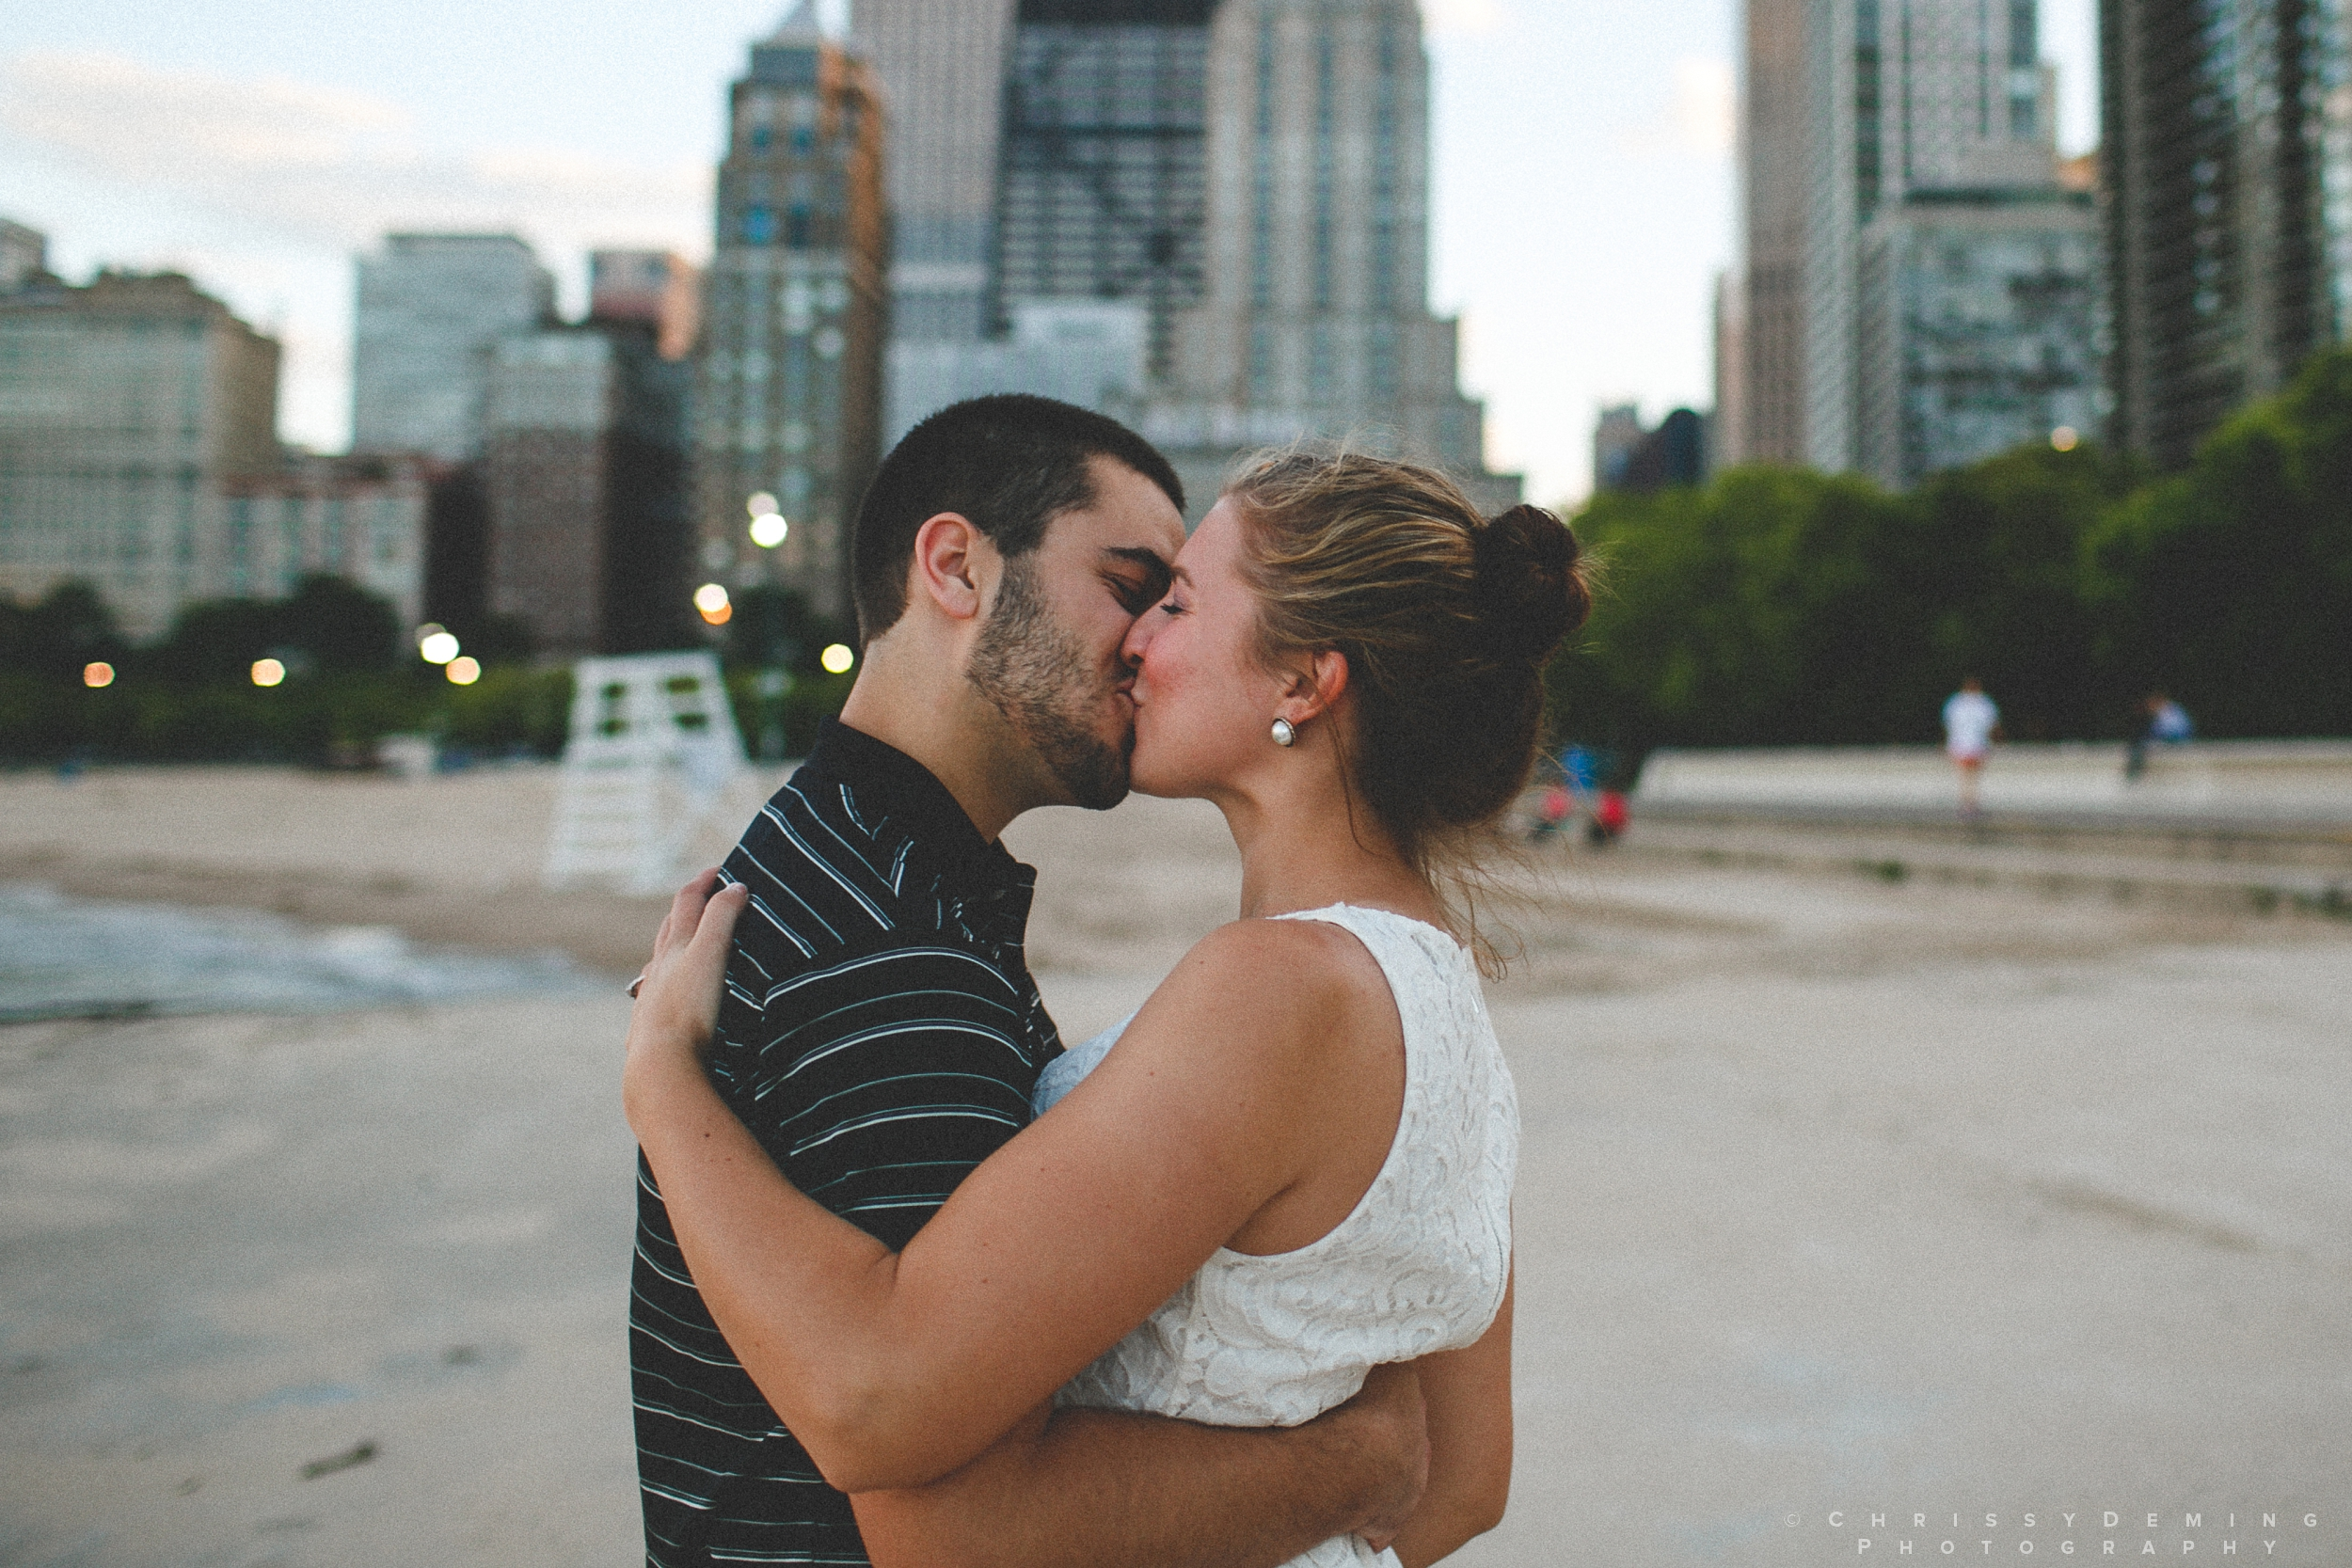 chicago_oakstreetbeach_lincolnpark_engagement_photography_0017.jpg